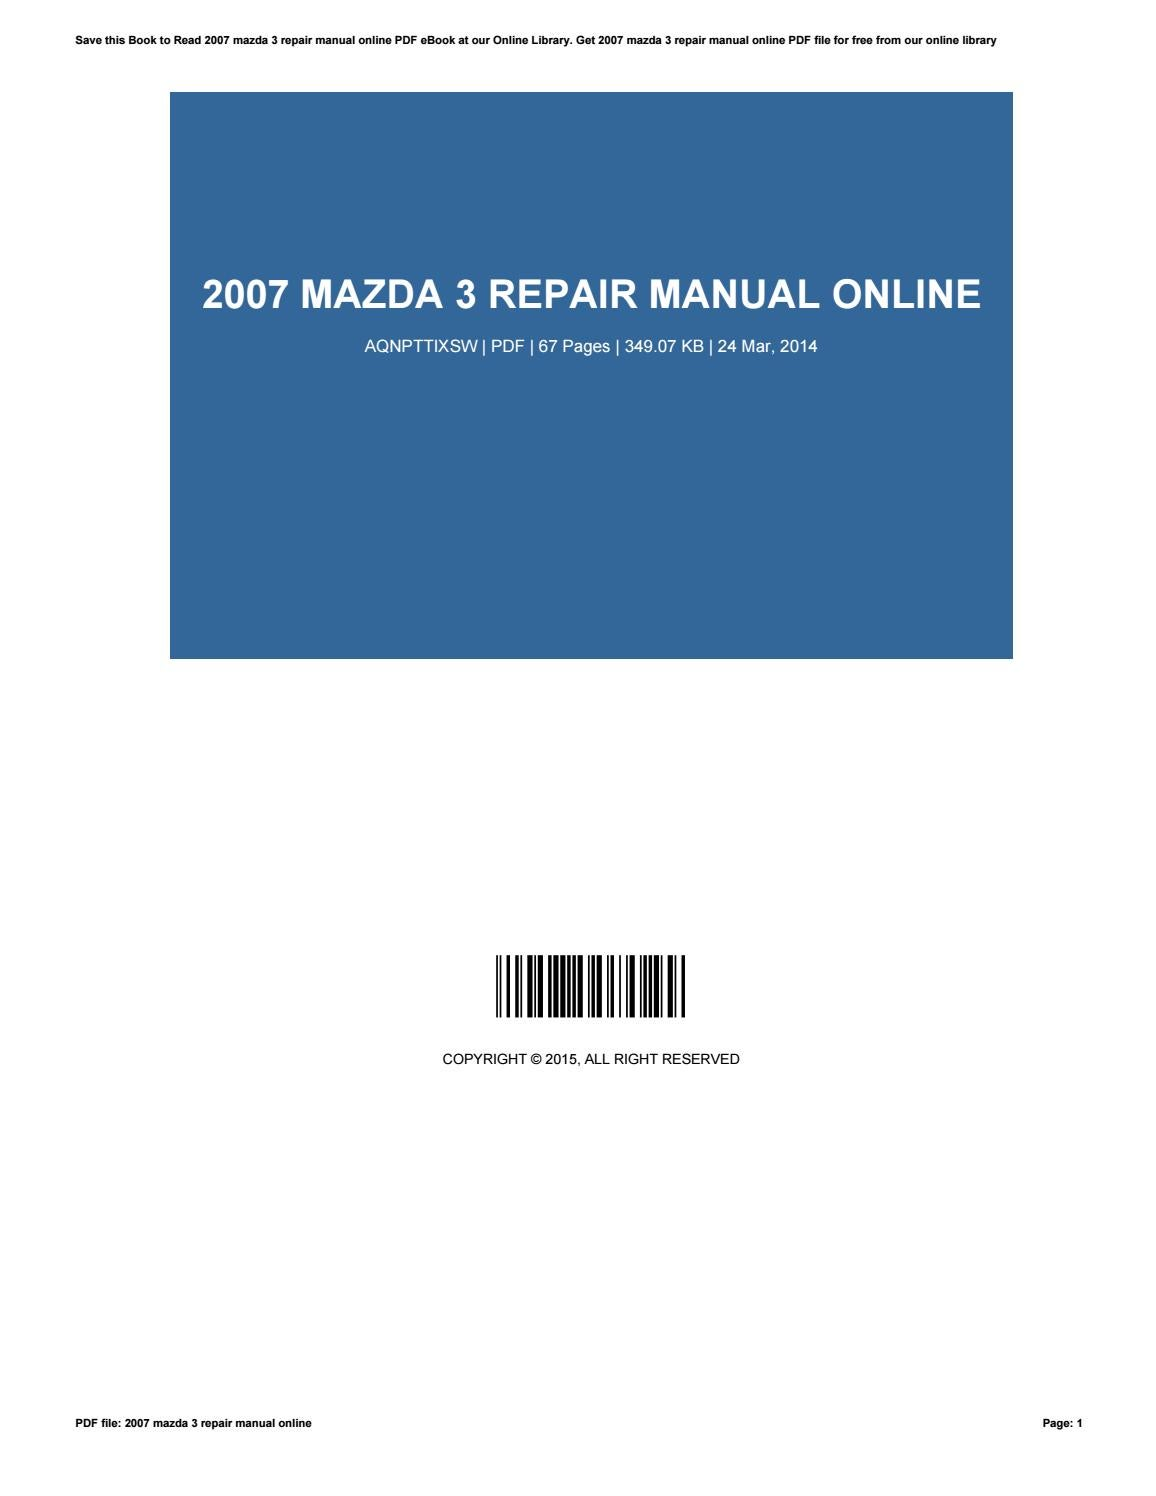 mazda e2015 repair manual ebook